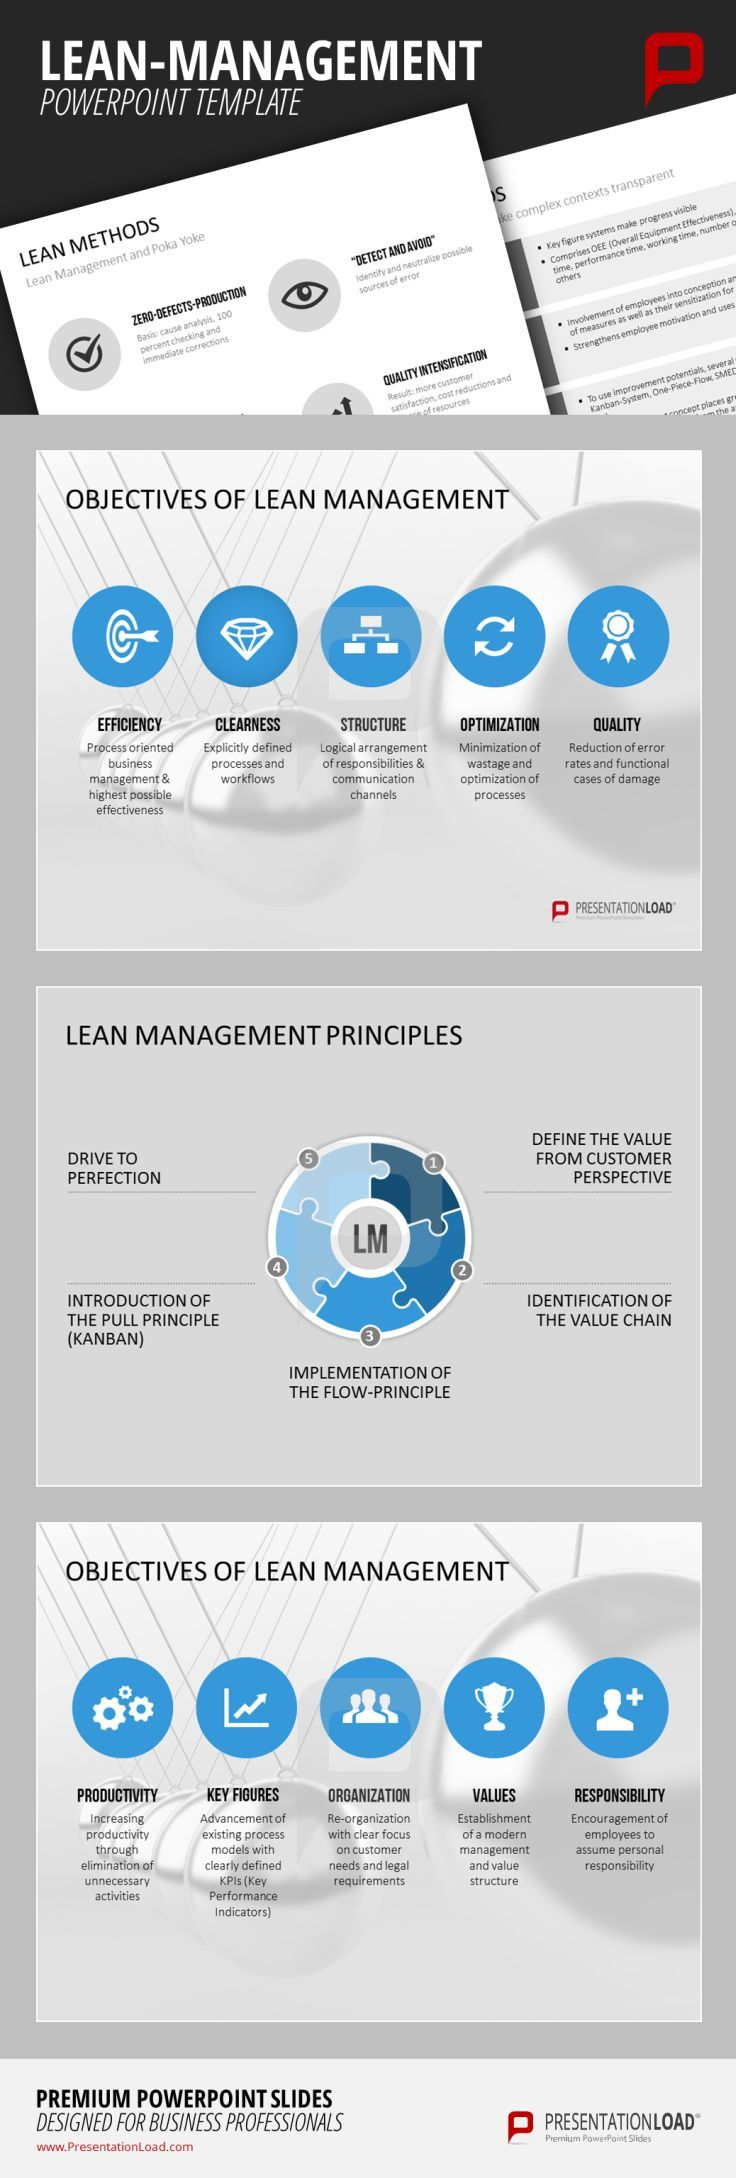 implementation of lean manufacturing principles Paper studies on the implementation a lean manufacturing project done at an automotive component company the lean project uses the supplier kaizen framework- steps and methodology to implement the lean manufacturing at a.